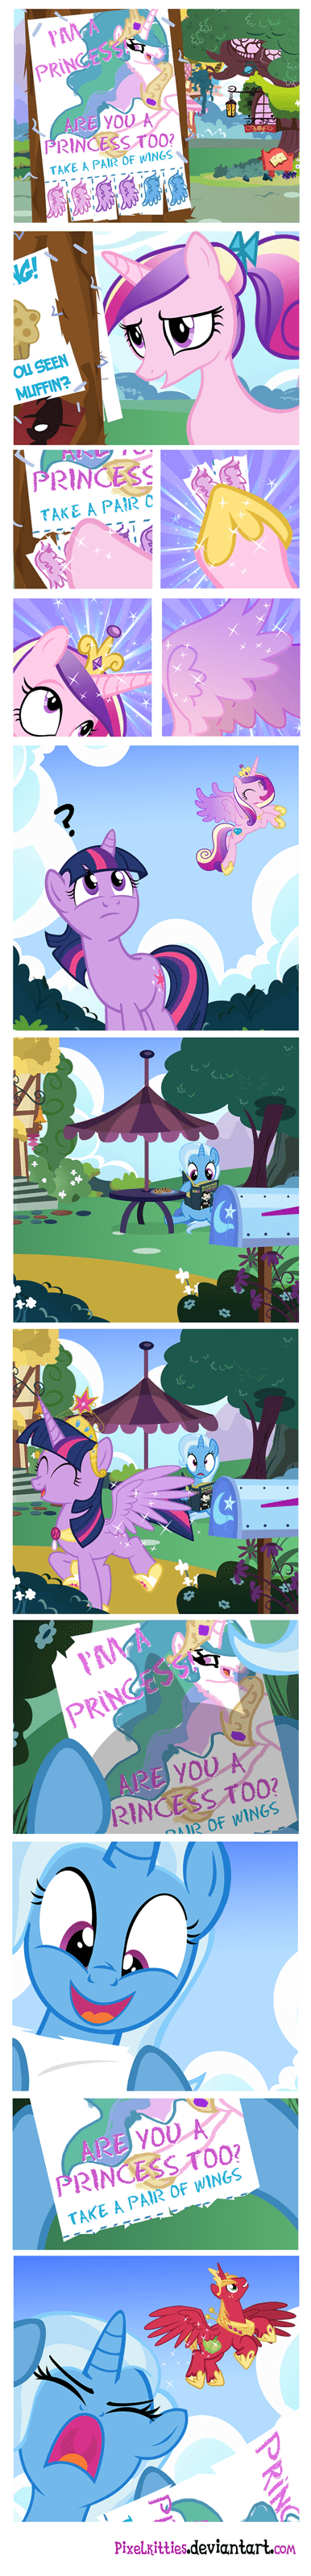 trixie,comics,big mac,princesses